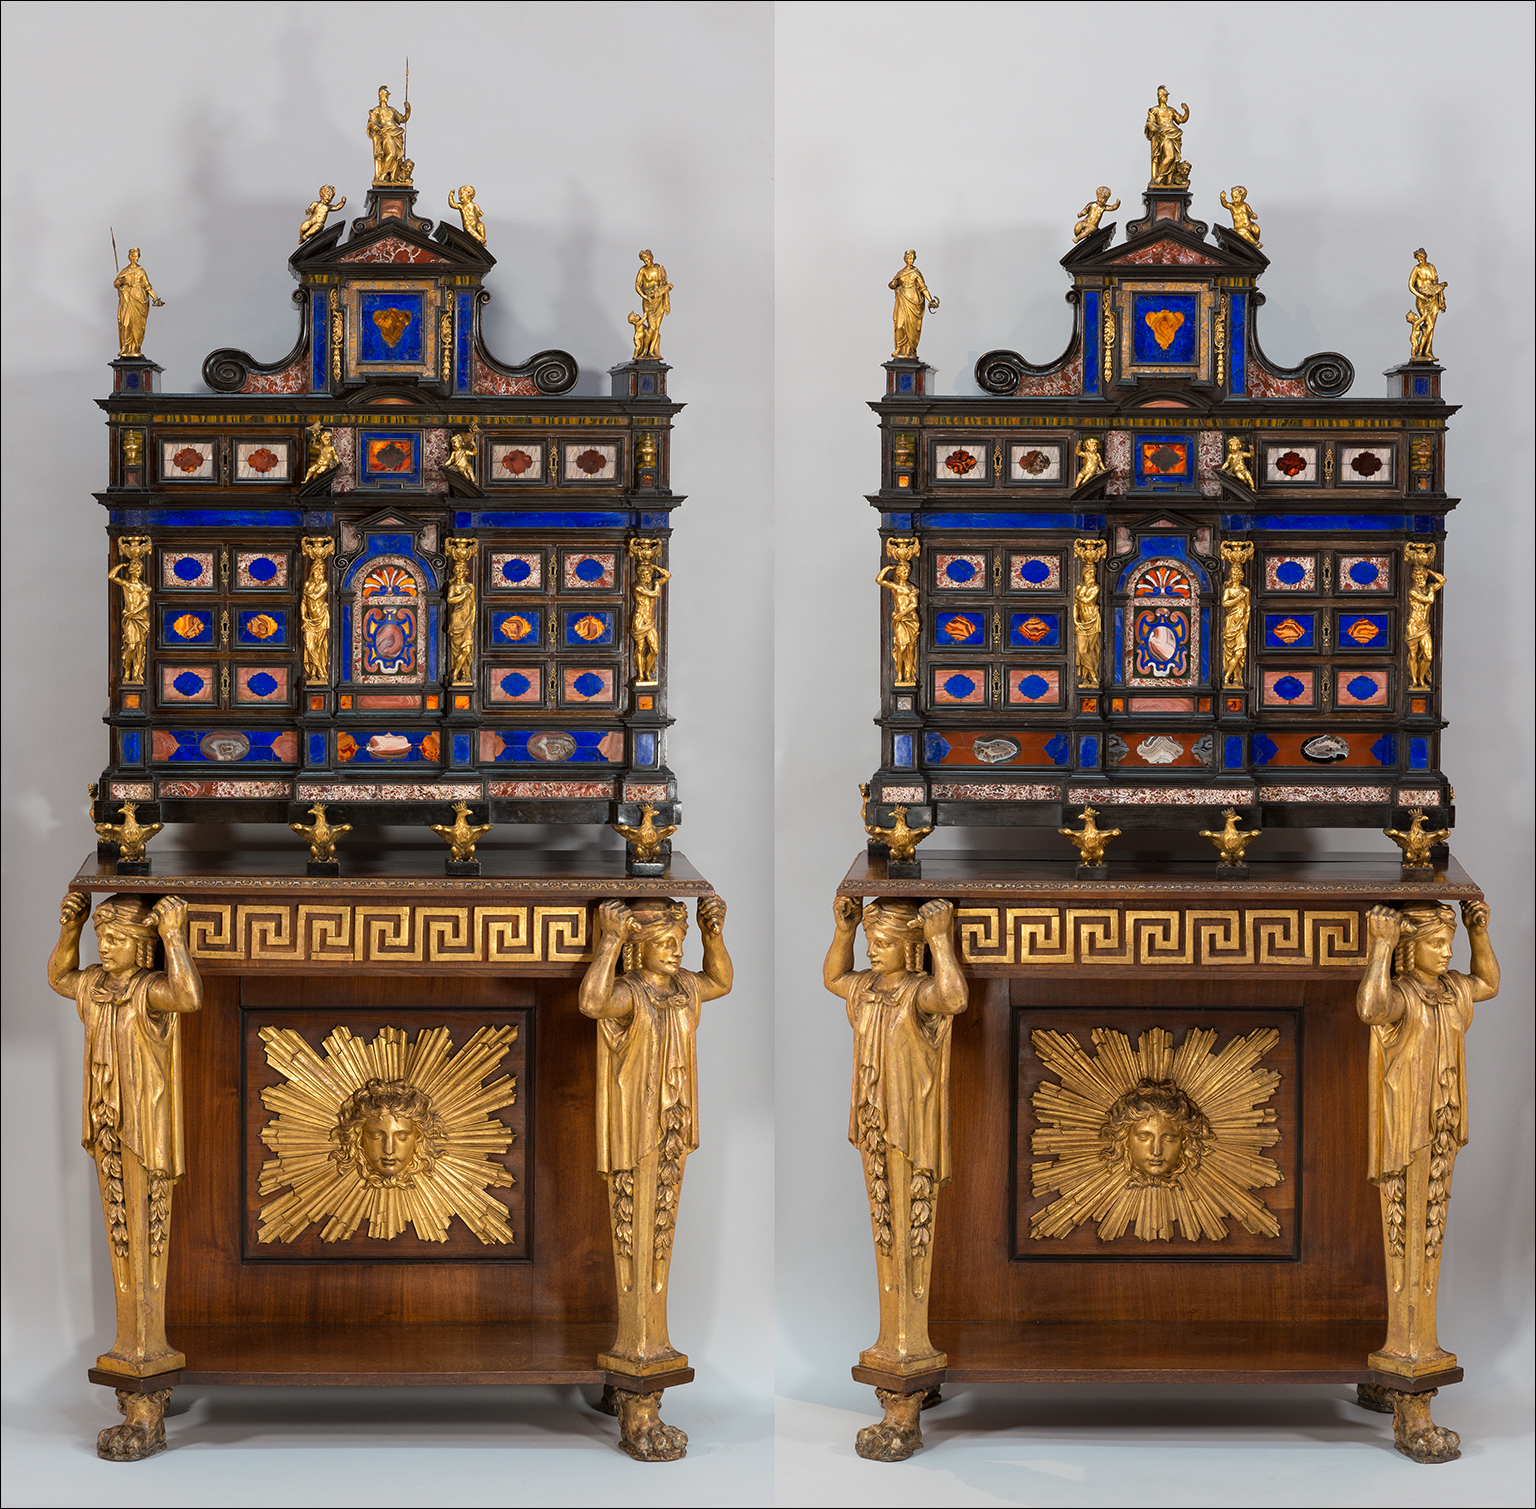 Pair of ebony veneered Cabinet of Architectural Form